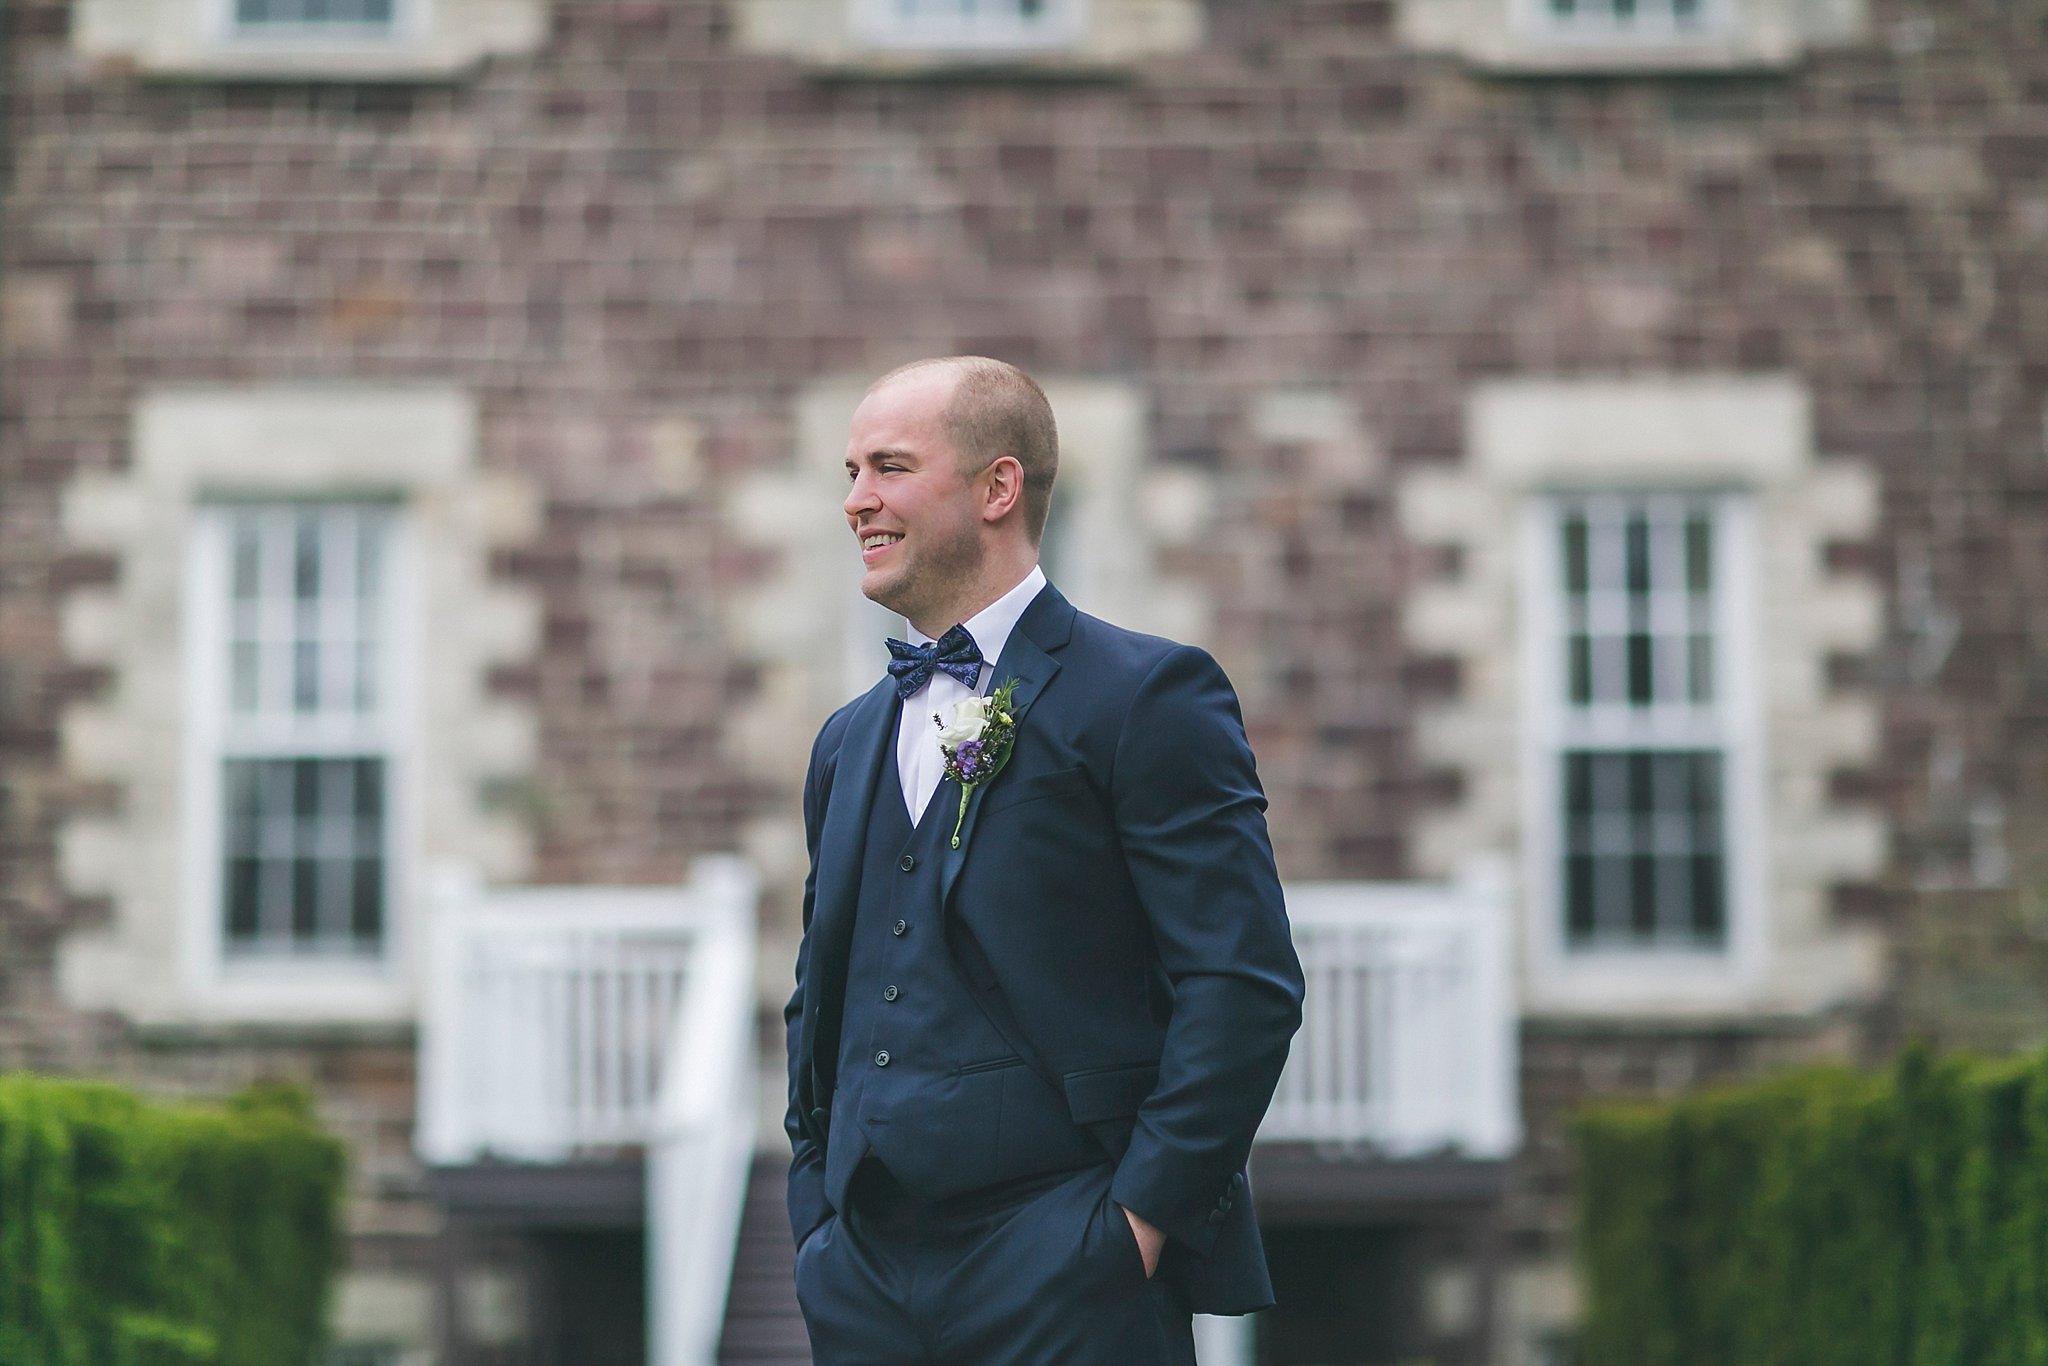 Groom outside Government House during a St. John's, Newfoundland wedding